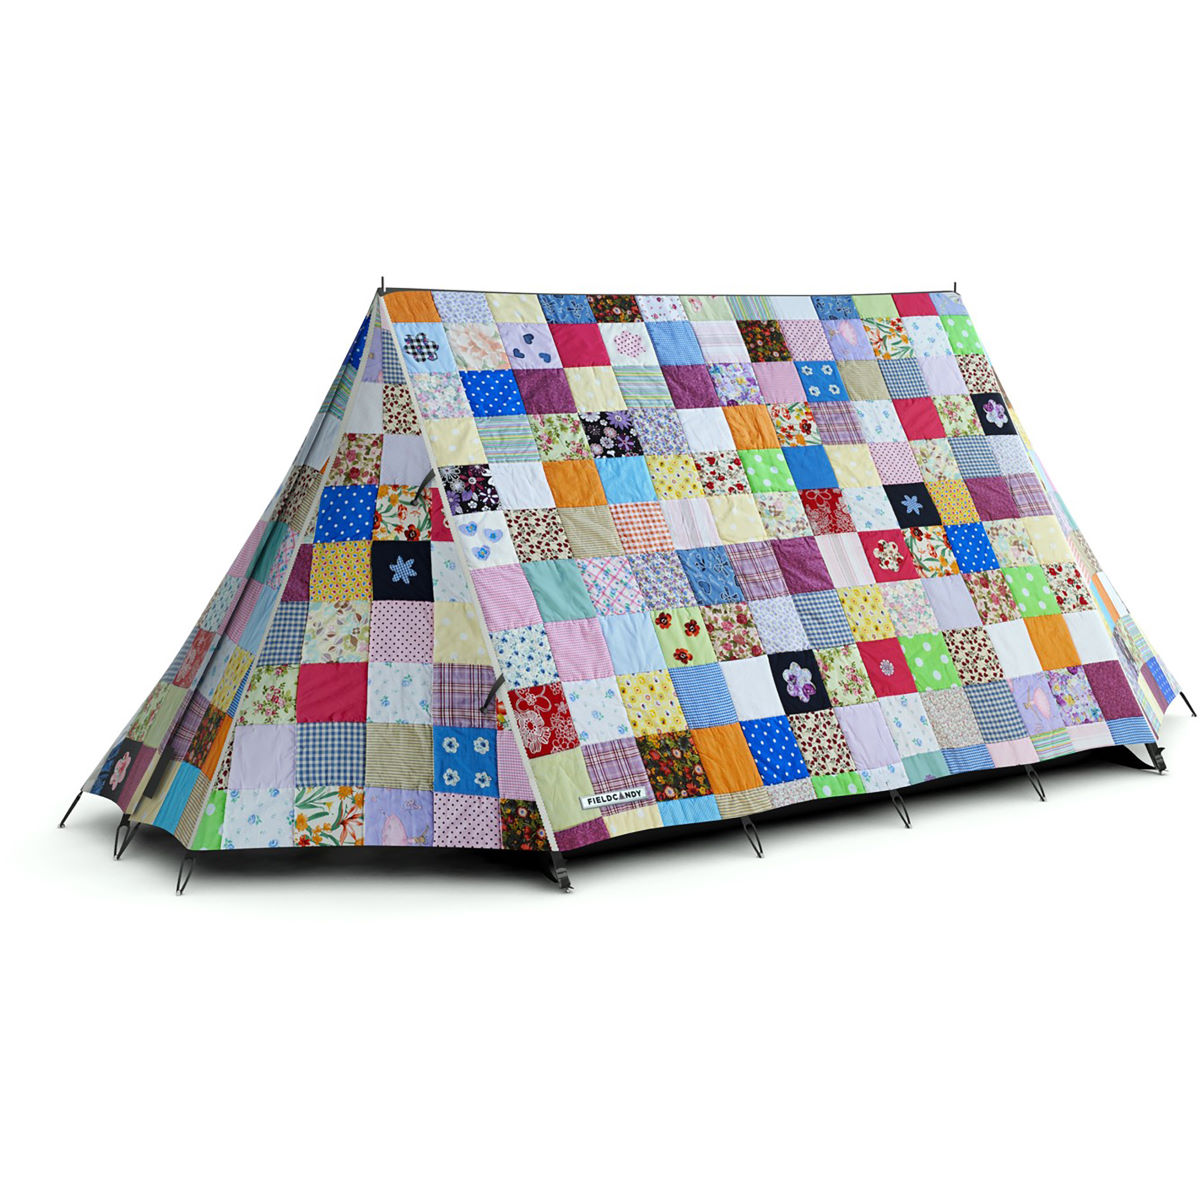 FieldCandy FieldCandy Original Explorer Tent   Tents